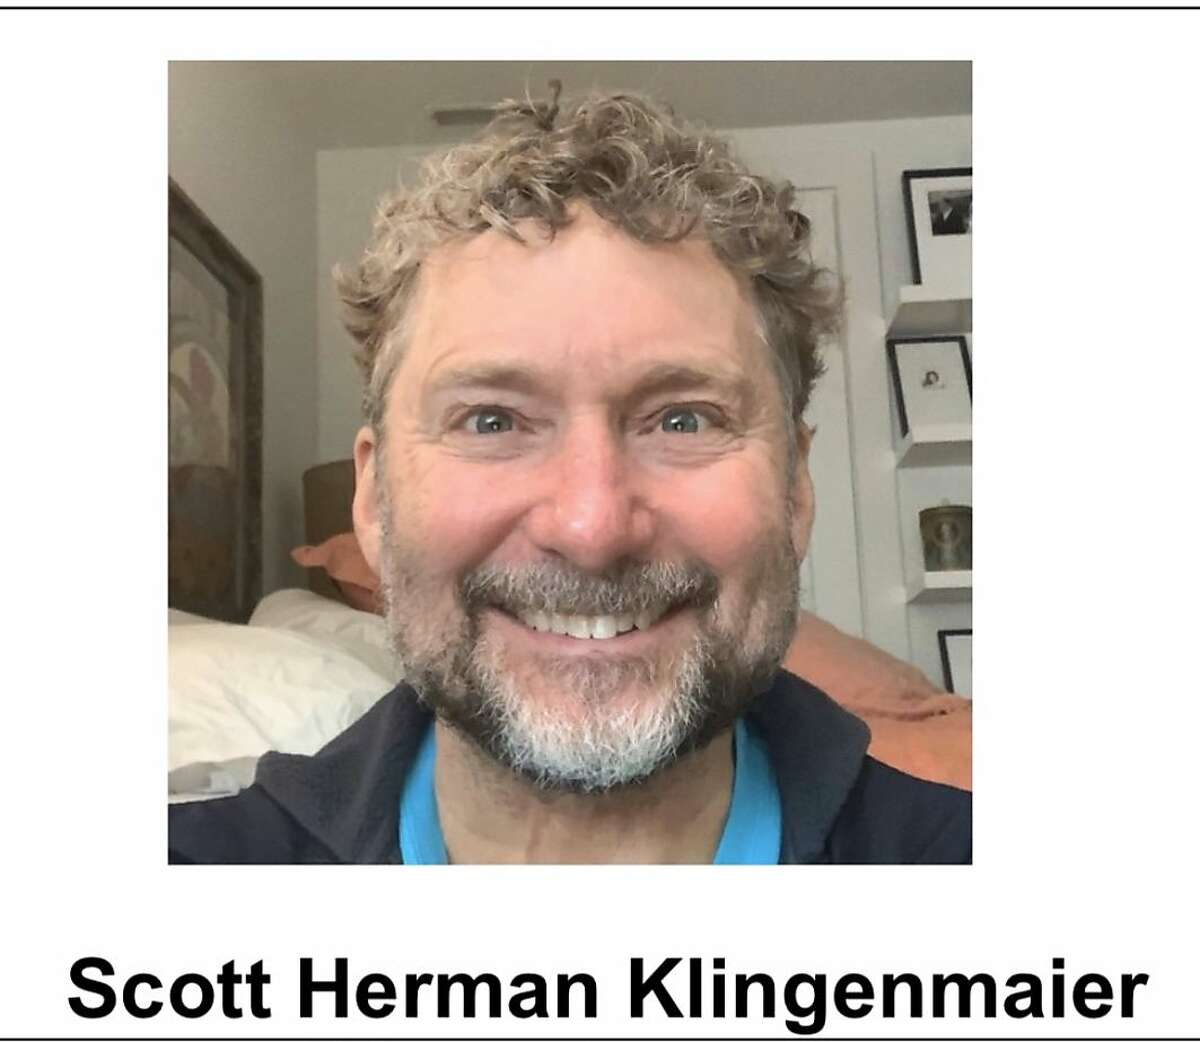 Officials found Scott Klingenmaier, 56, dead after he was last seen going for a hike on Thursday near Tennesee Valley Road and Oakwood Trail, according to the Sheriff's Office.